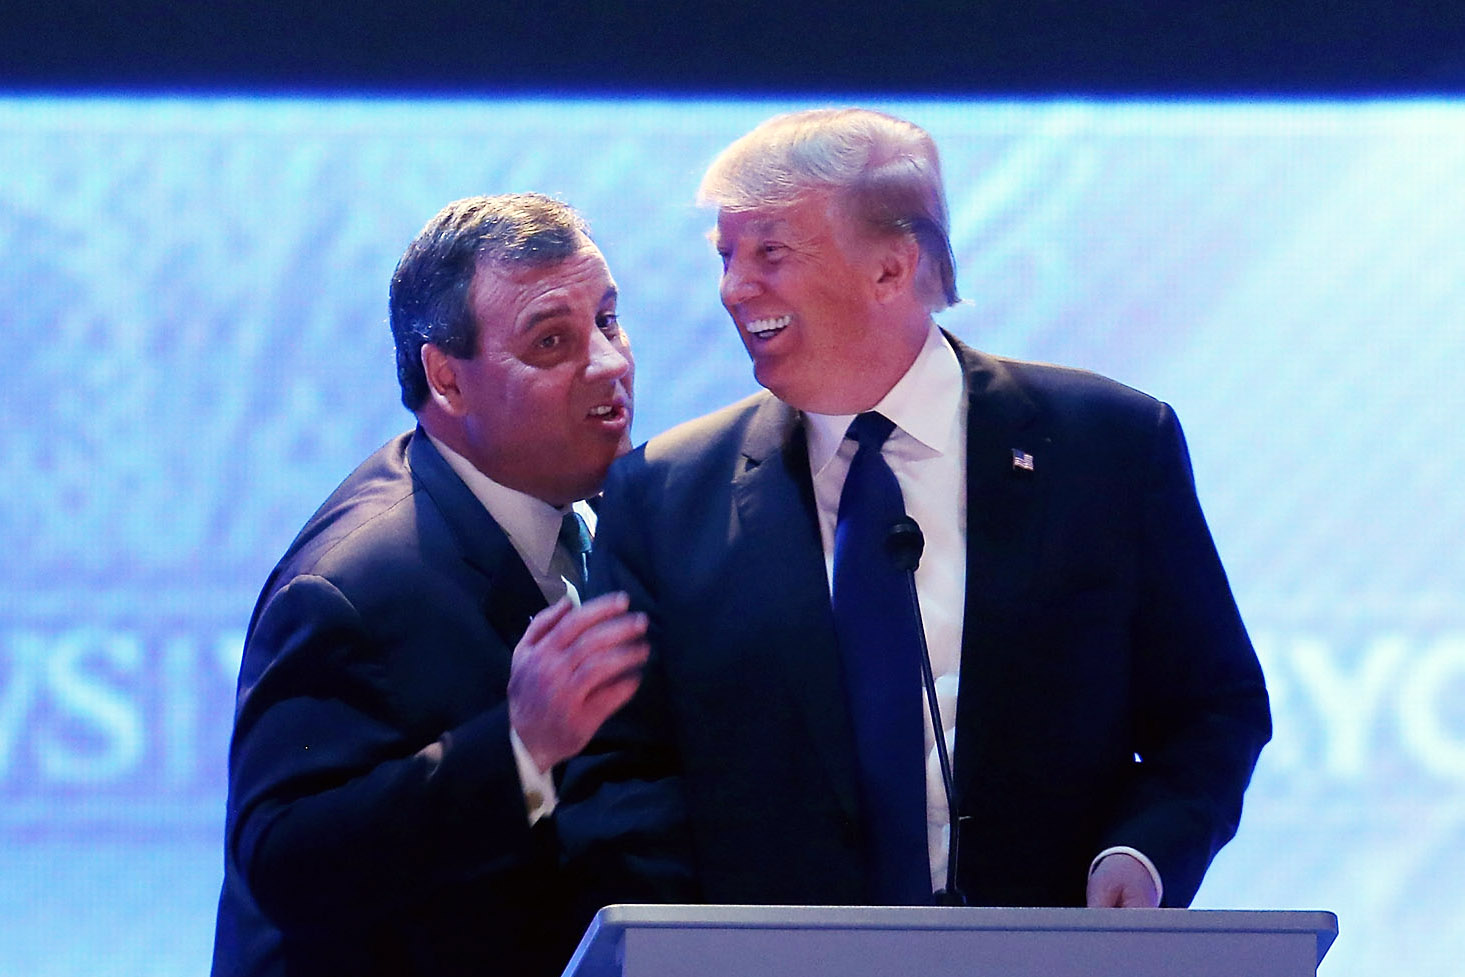 New Jersey Gov. Chris Christie endorsed business Donald Trump for president on Feb. 26. Here, the candidates greeted each other during a commercial break in a Feb. 6 Republican presidential debate.